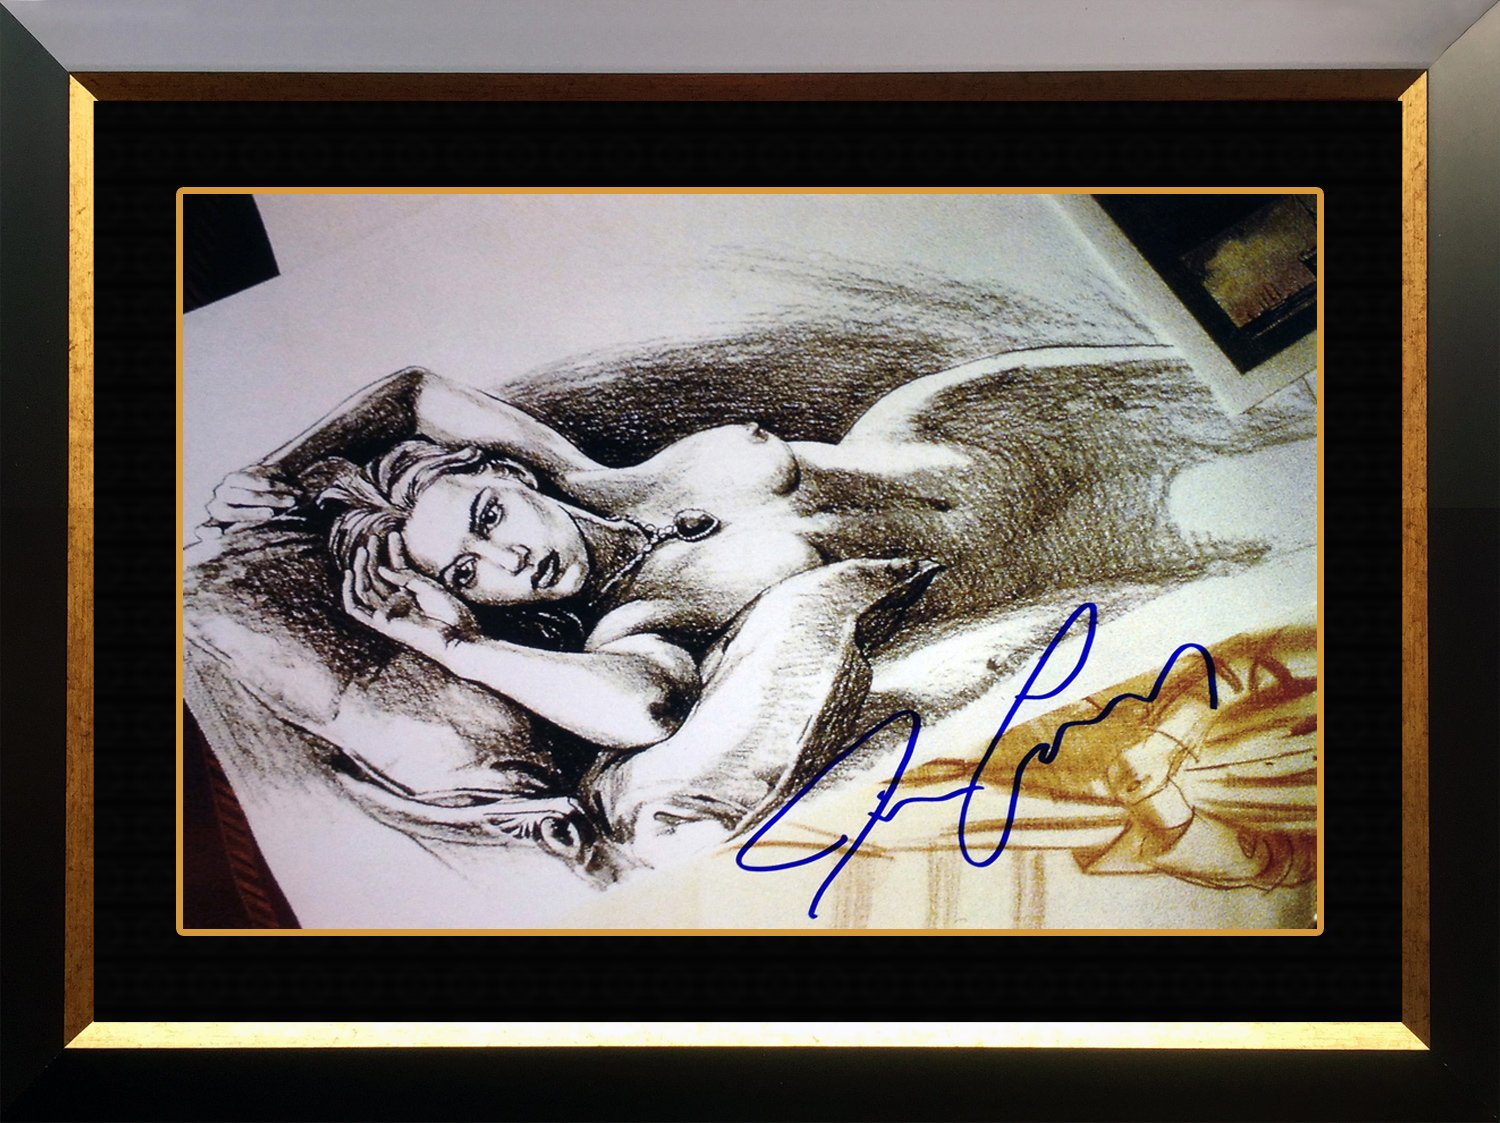 Titanicjacks Drawing Facsimile Signed By James Cameron Framed Photo 20x24 At Amazons Sports Collectibles Store